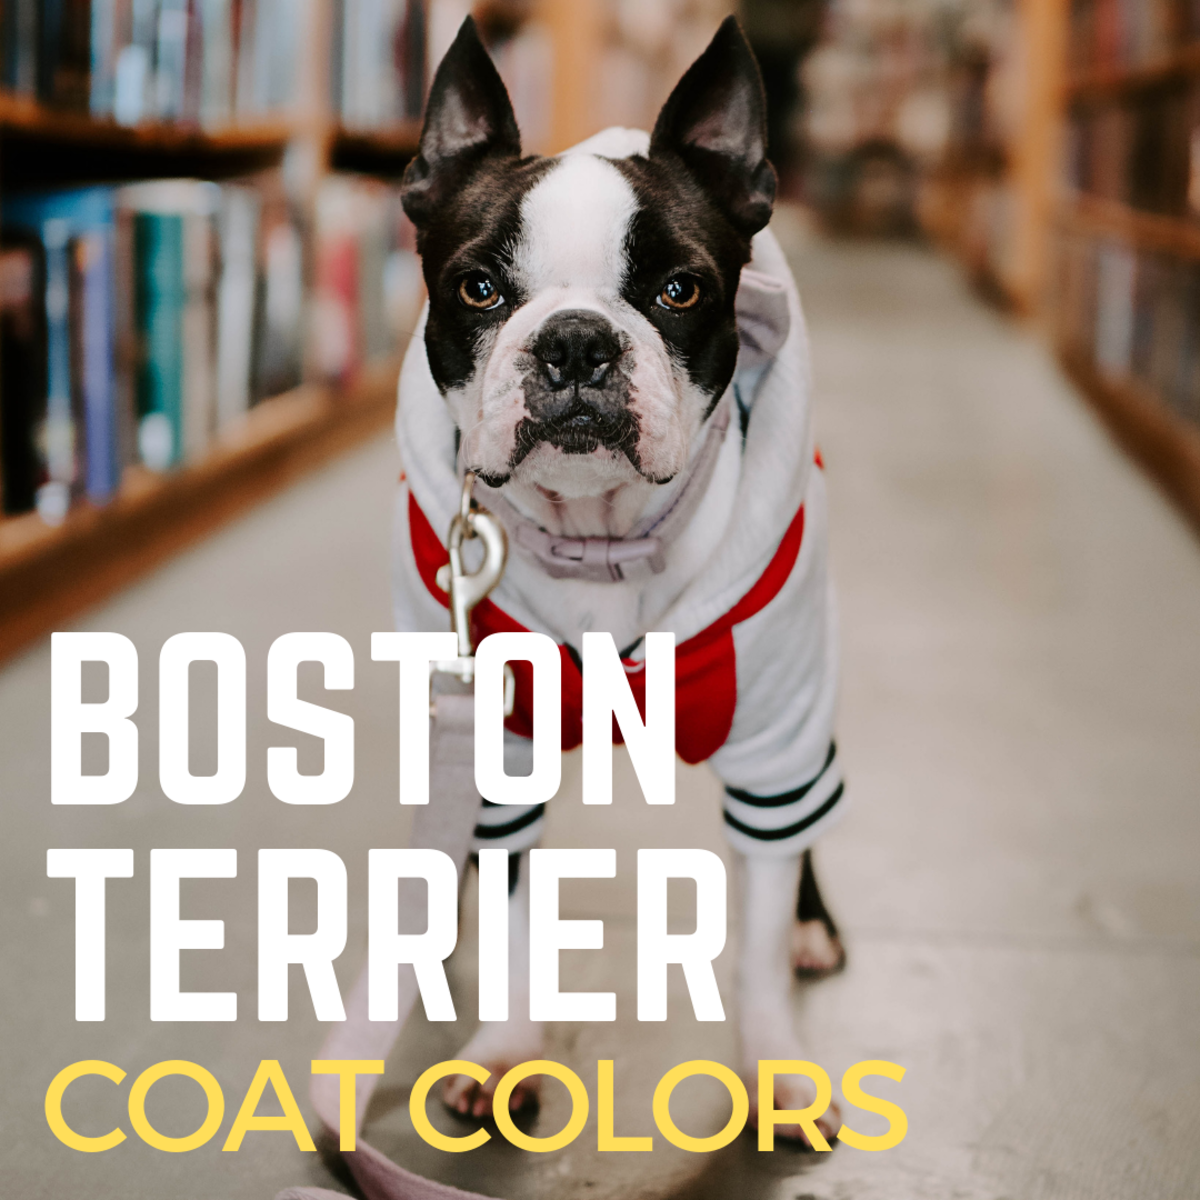 Boston Terrier Coat Colors